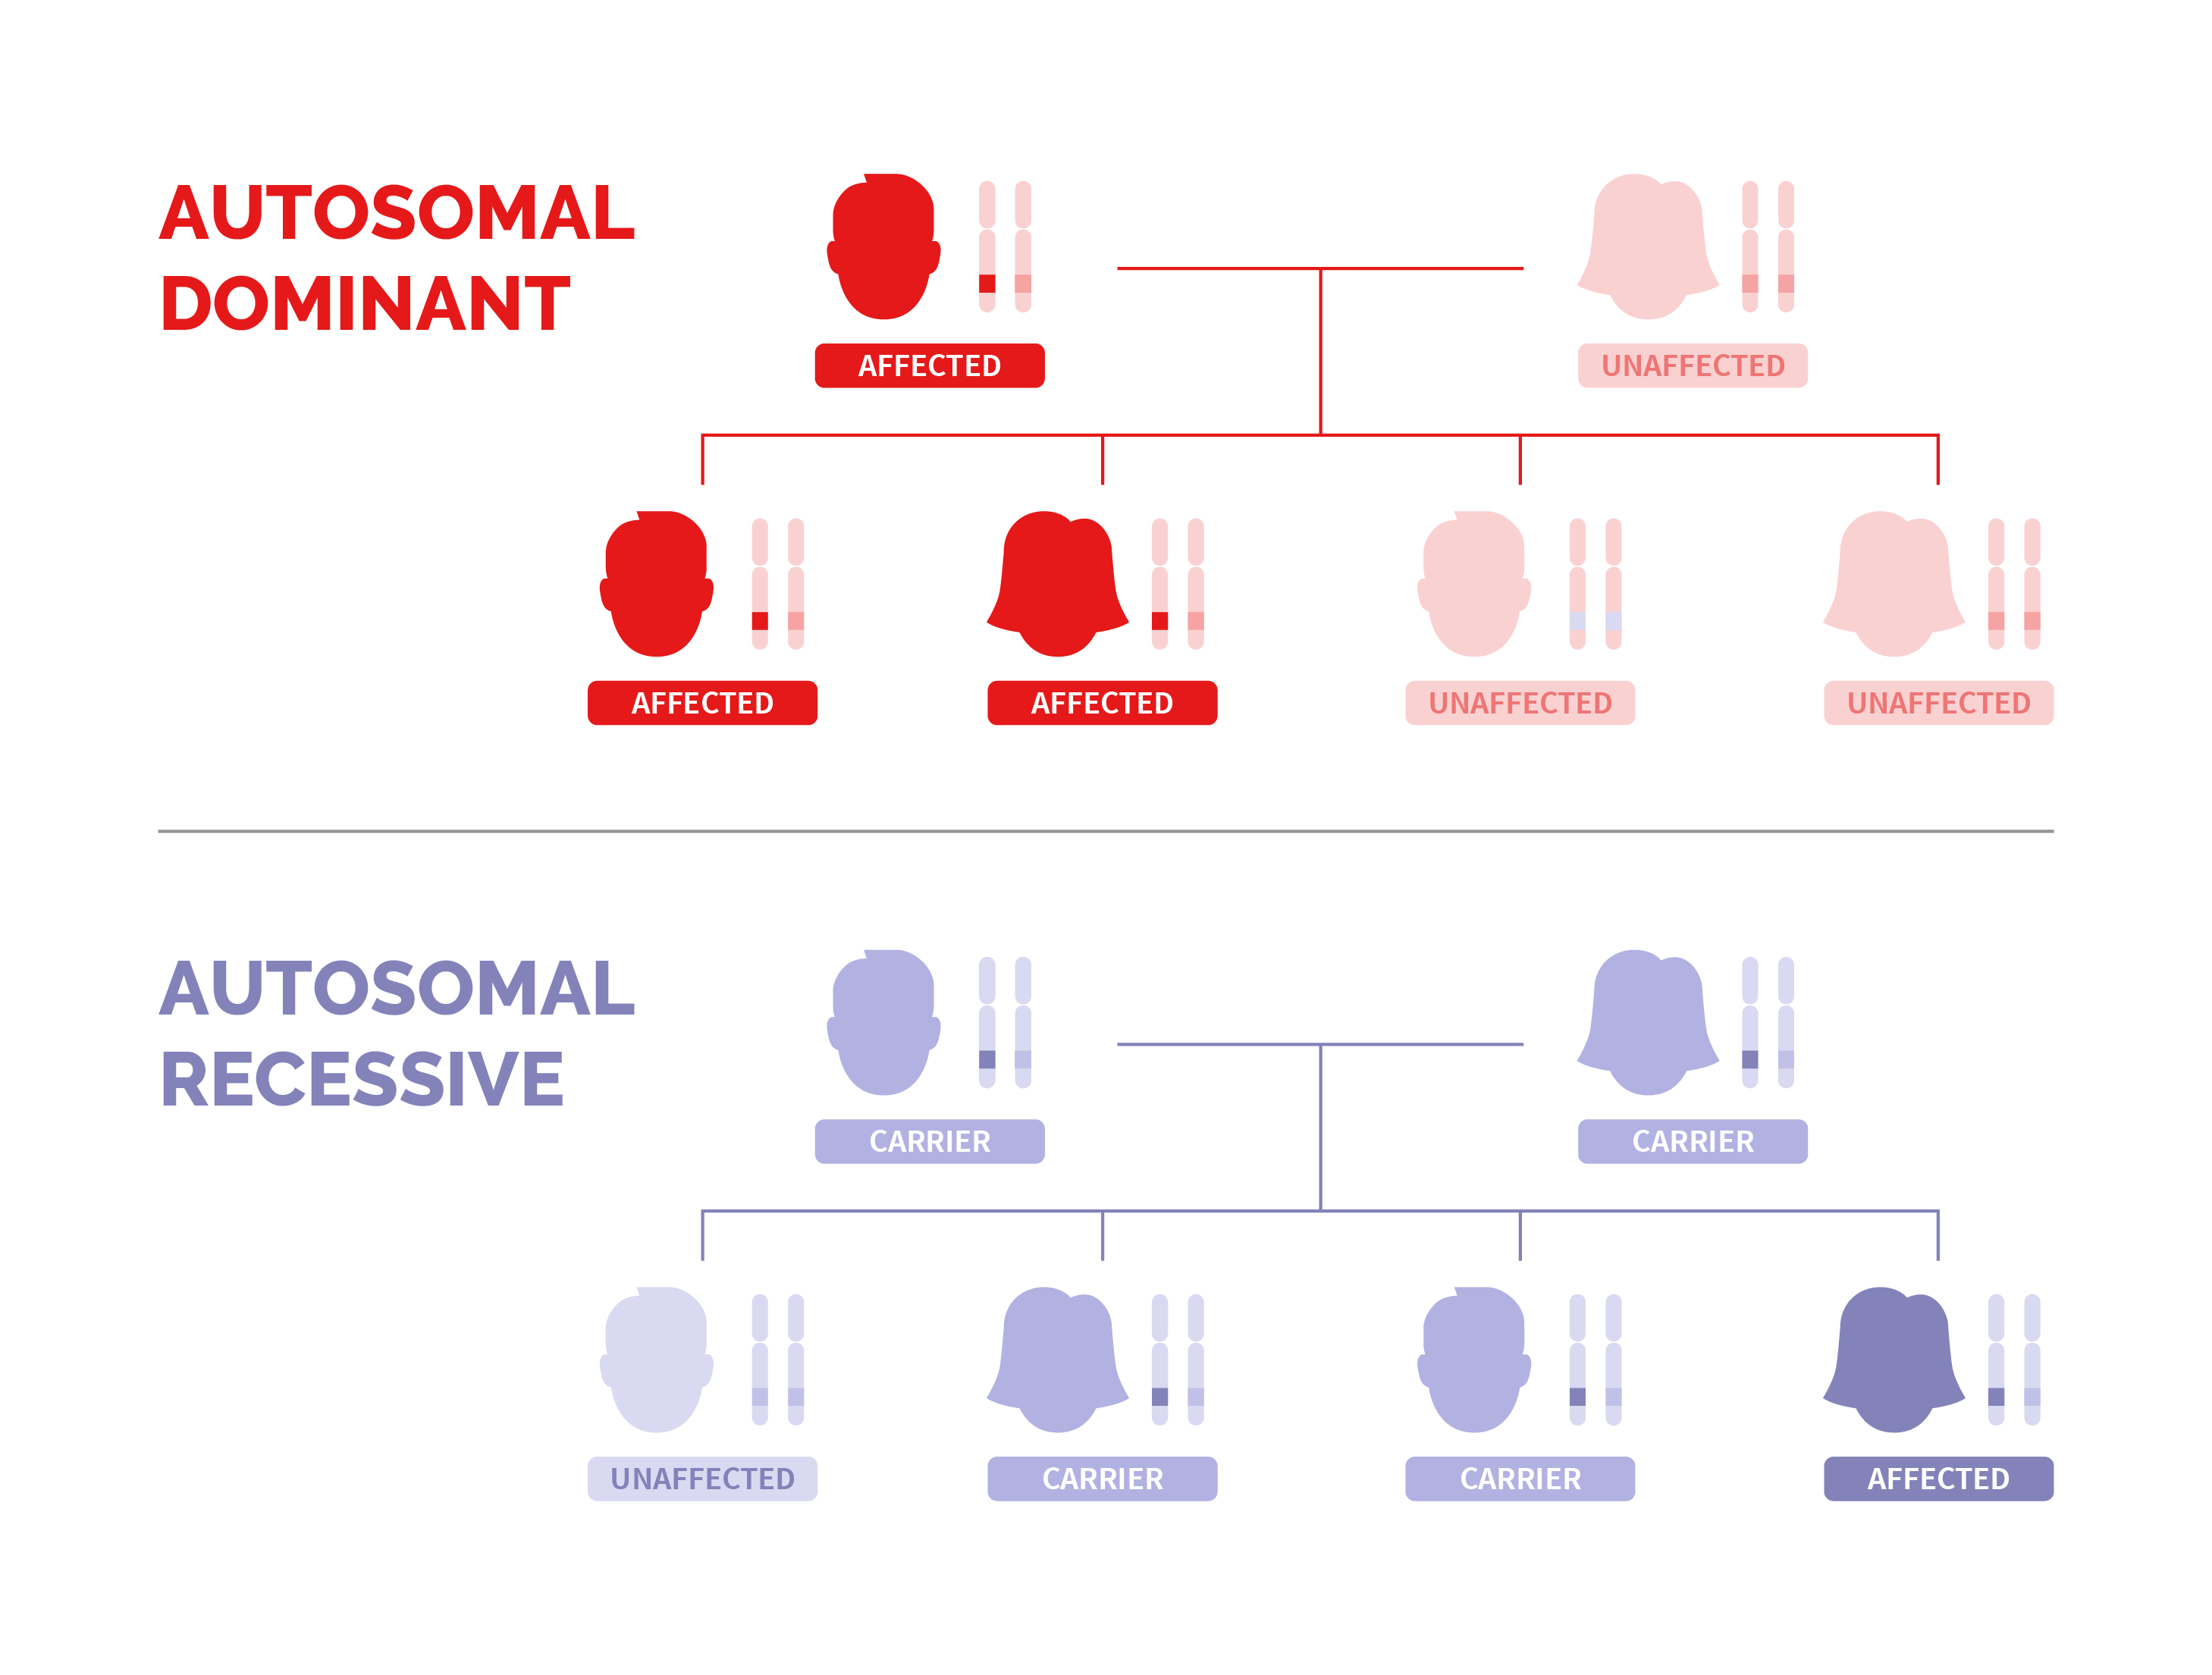 Two family trees showing autosomal dominant pattern and autosomal recessive inheritance pattern of Long QT syndrome